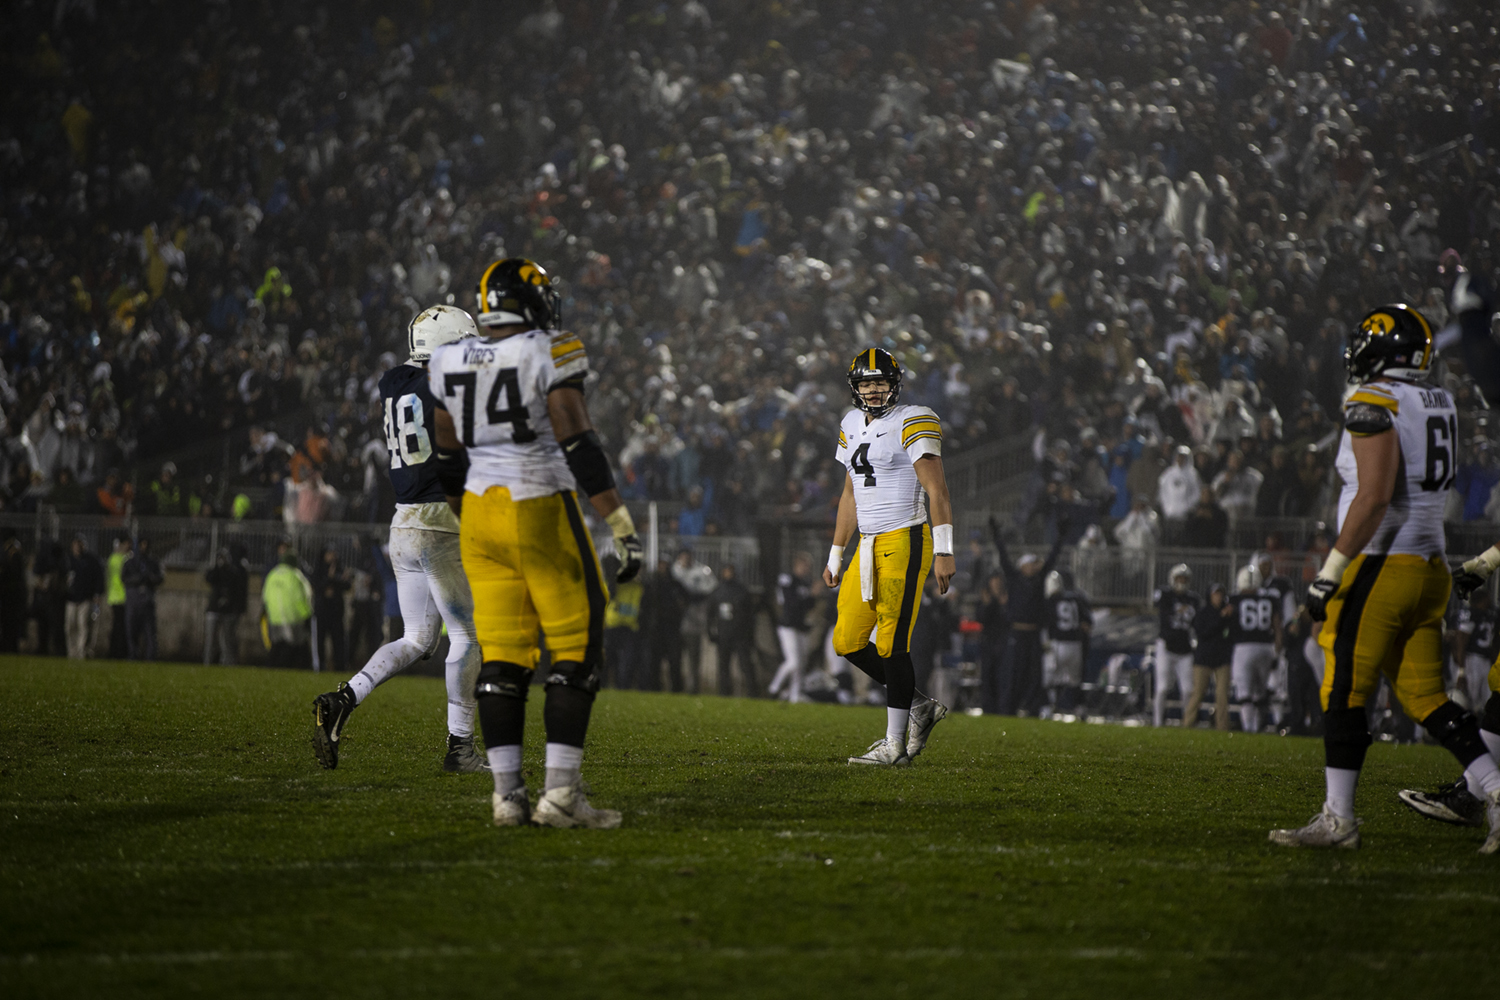 Iowa quarterback Nate Stanley (4) walks off the field after throwing an interception during Iowa's game against Penn State at Beaver Stadium on Saturday, October 27, 2018. The Nittany Lions defeated the Hawkeyes 30-24.